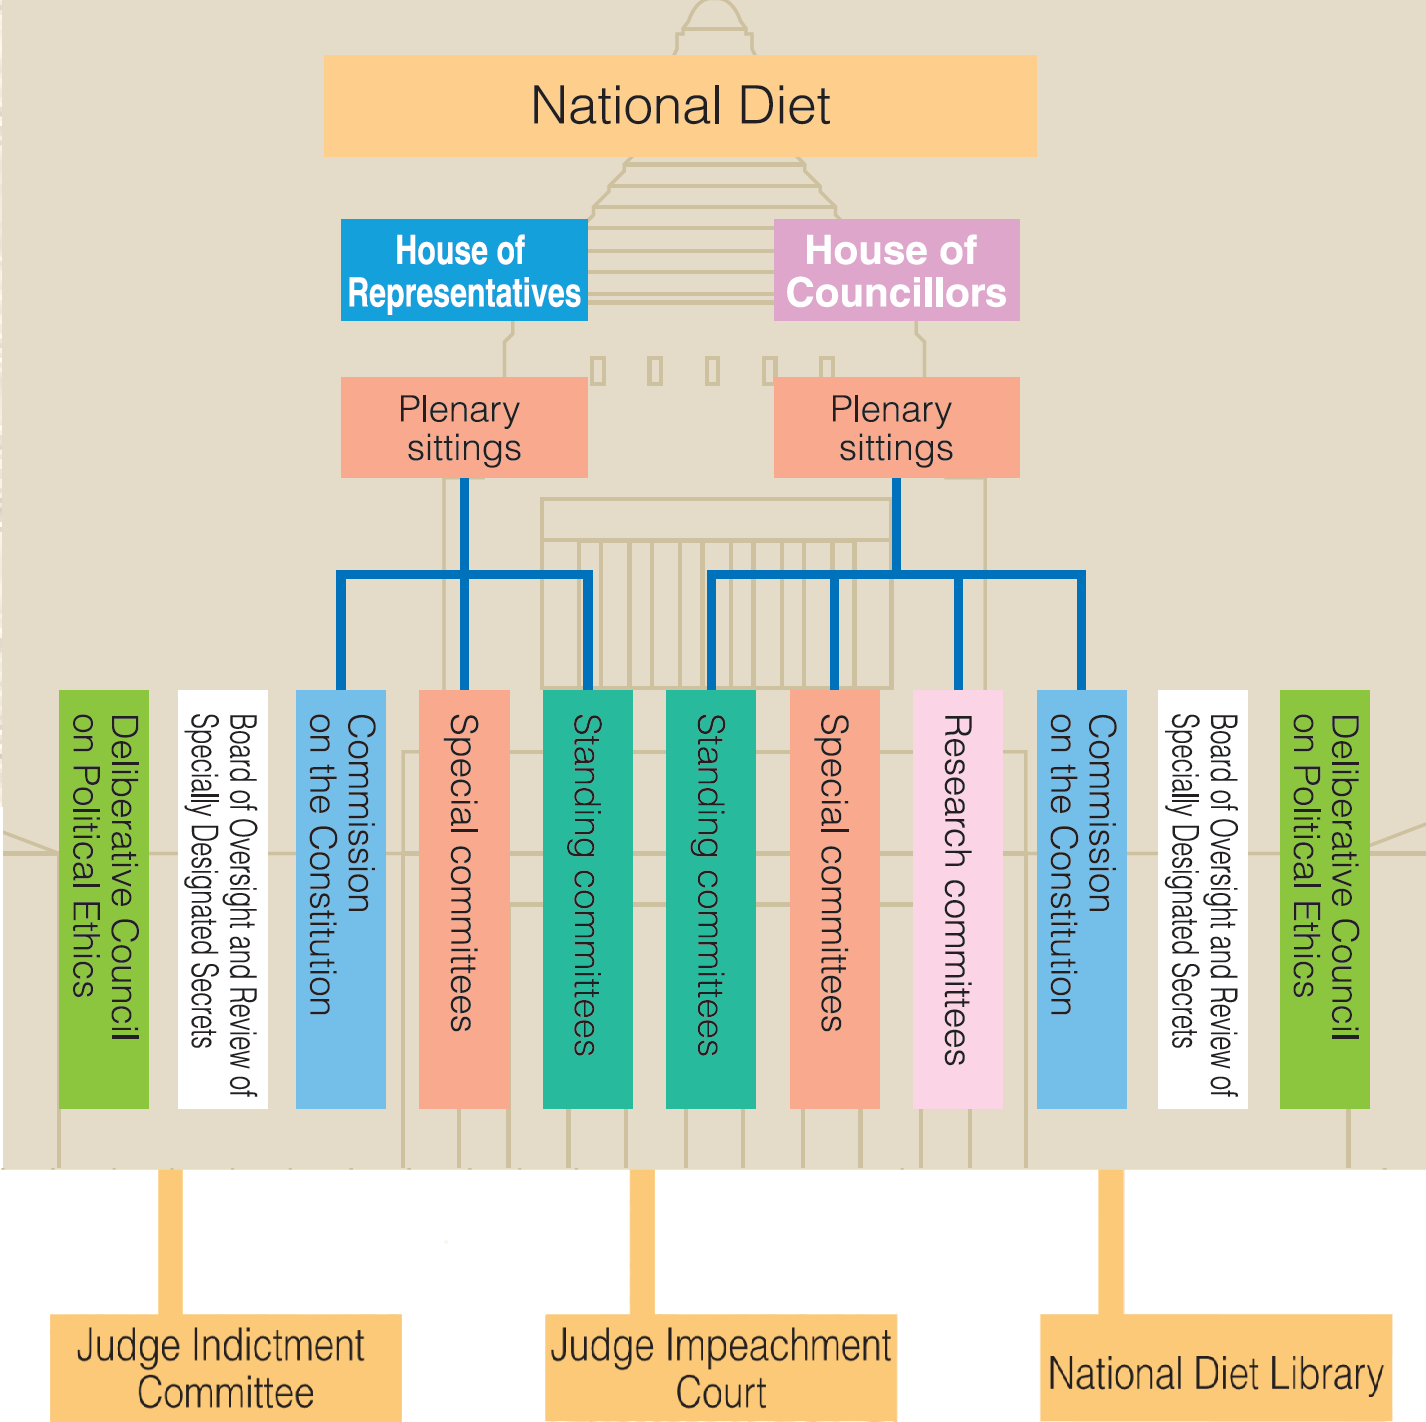 Structure of the National Diet